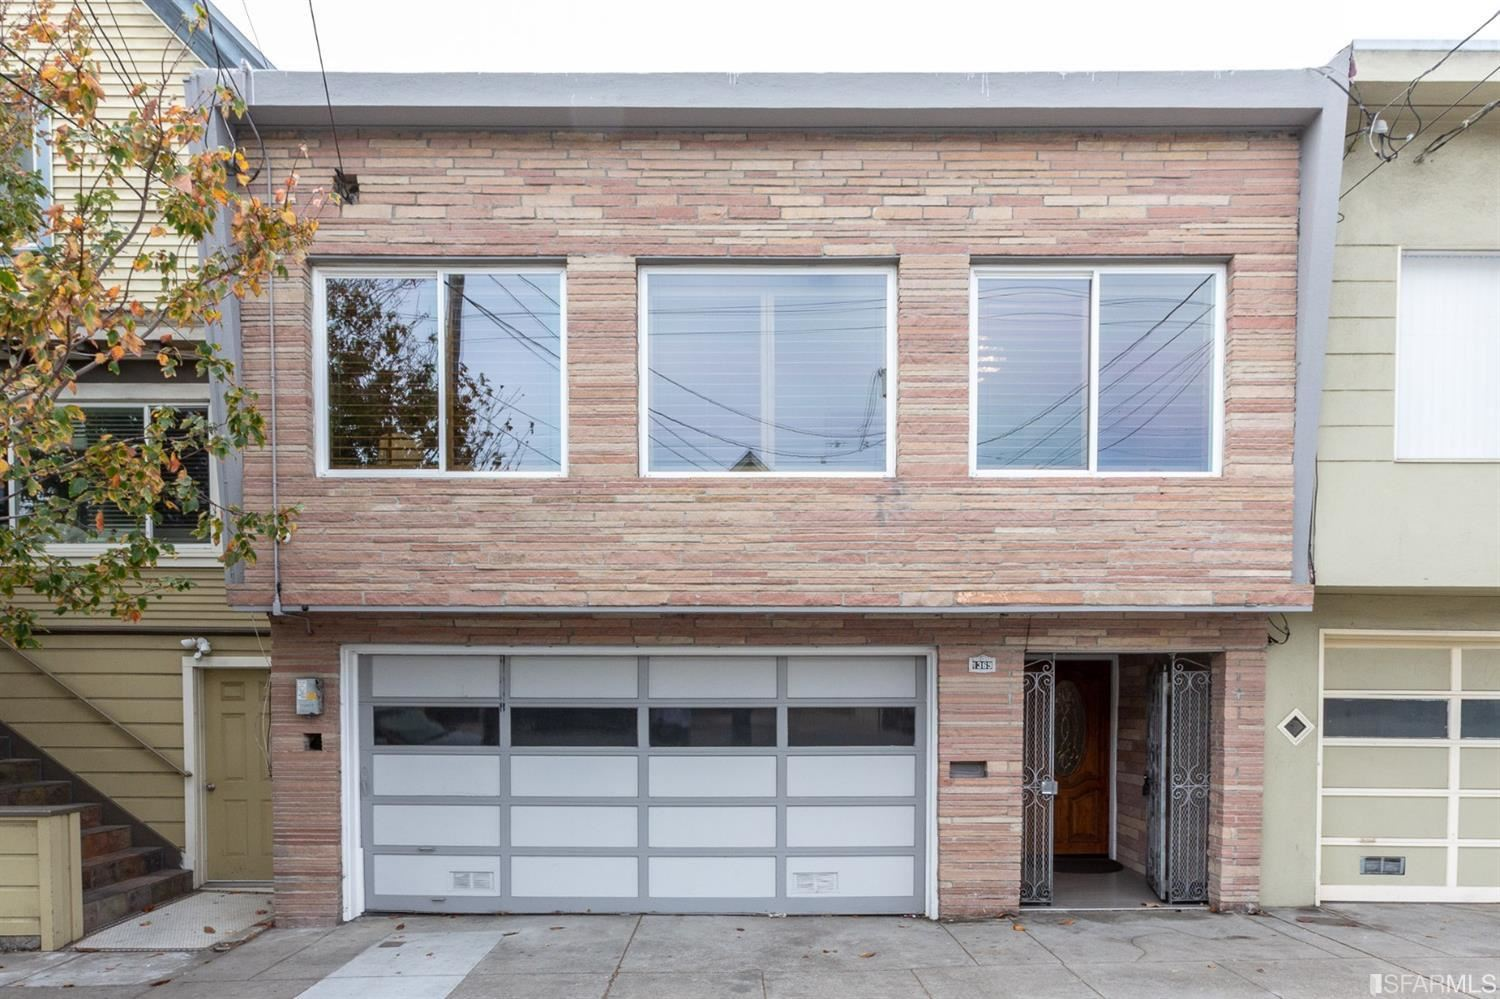 1369 Quesada Avenue, San Francisco, CA 94124 - #: 492699